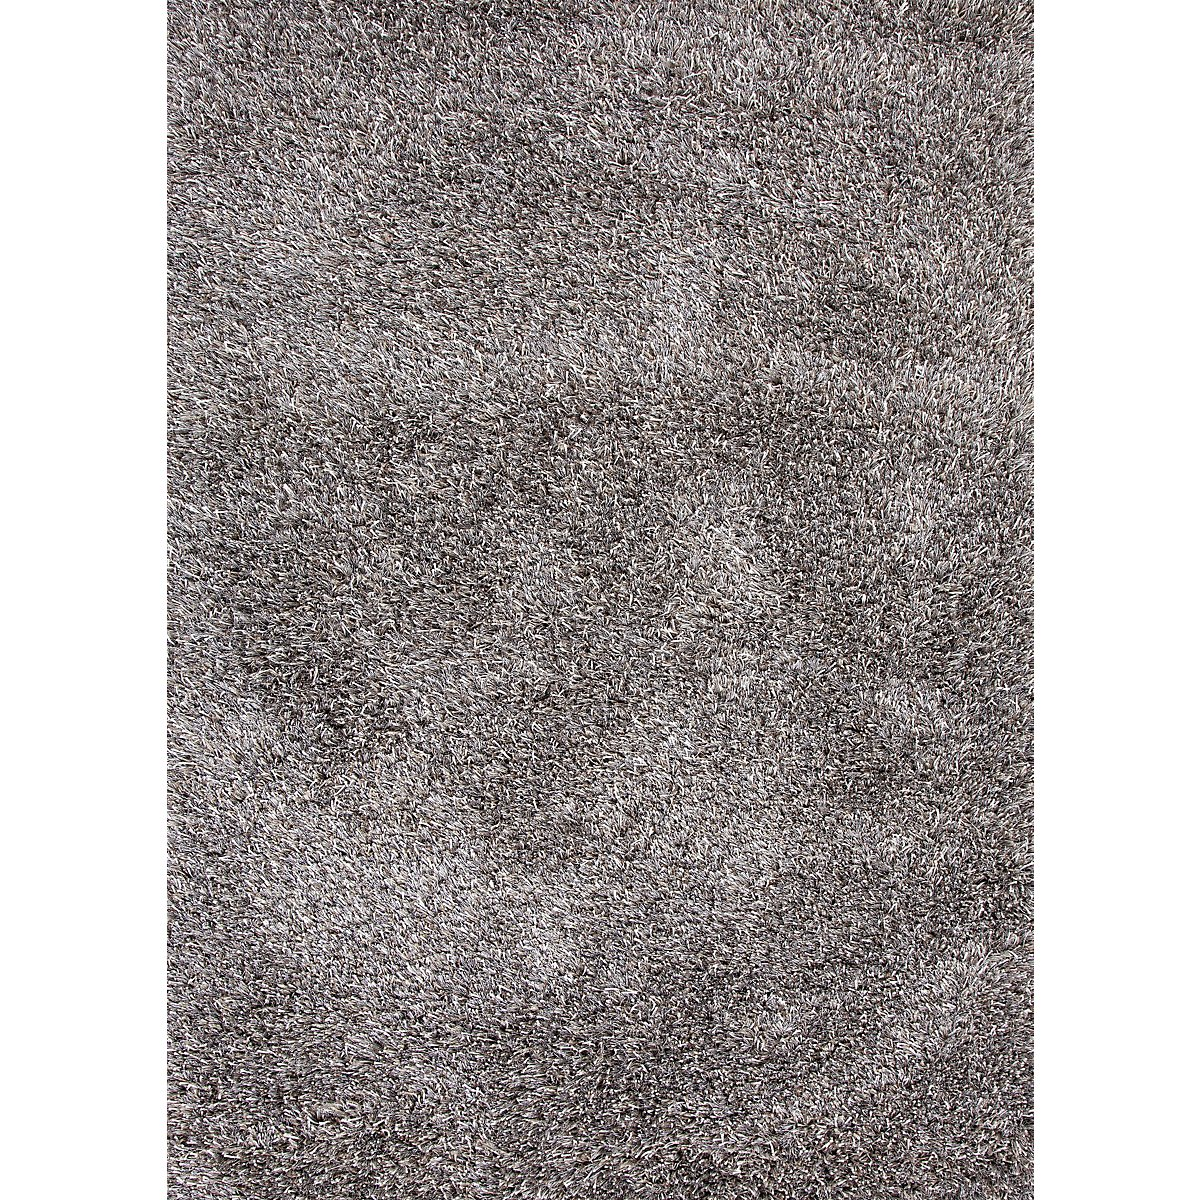 Nadia Light Gray 5X8 Area Rug